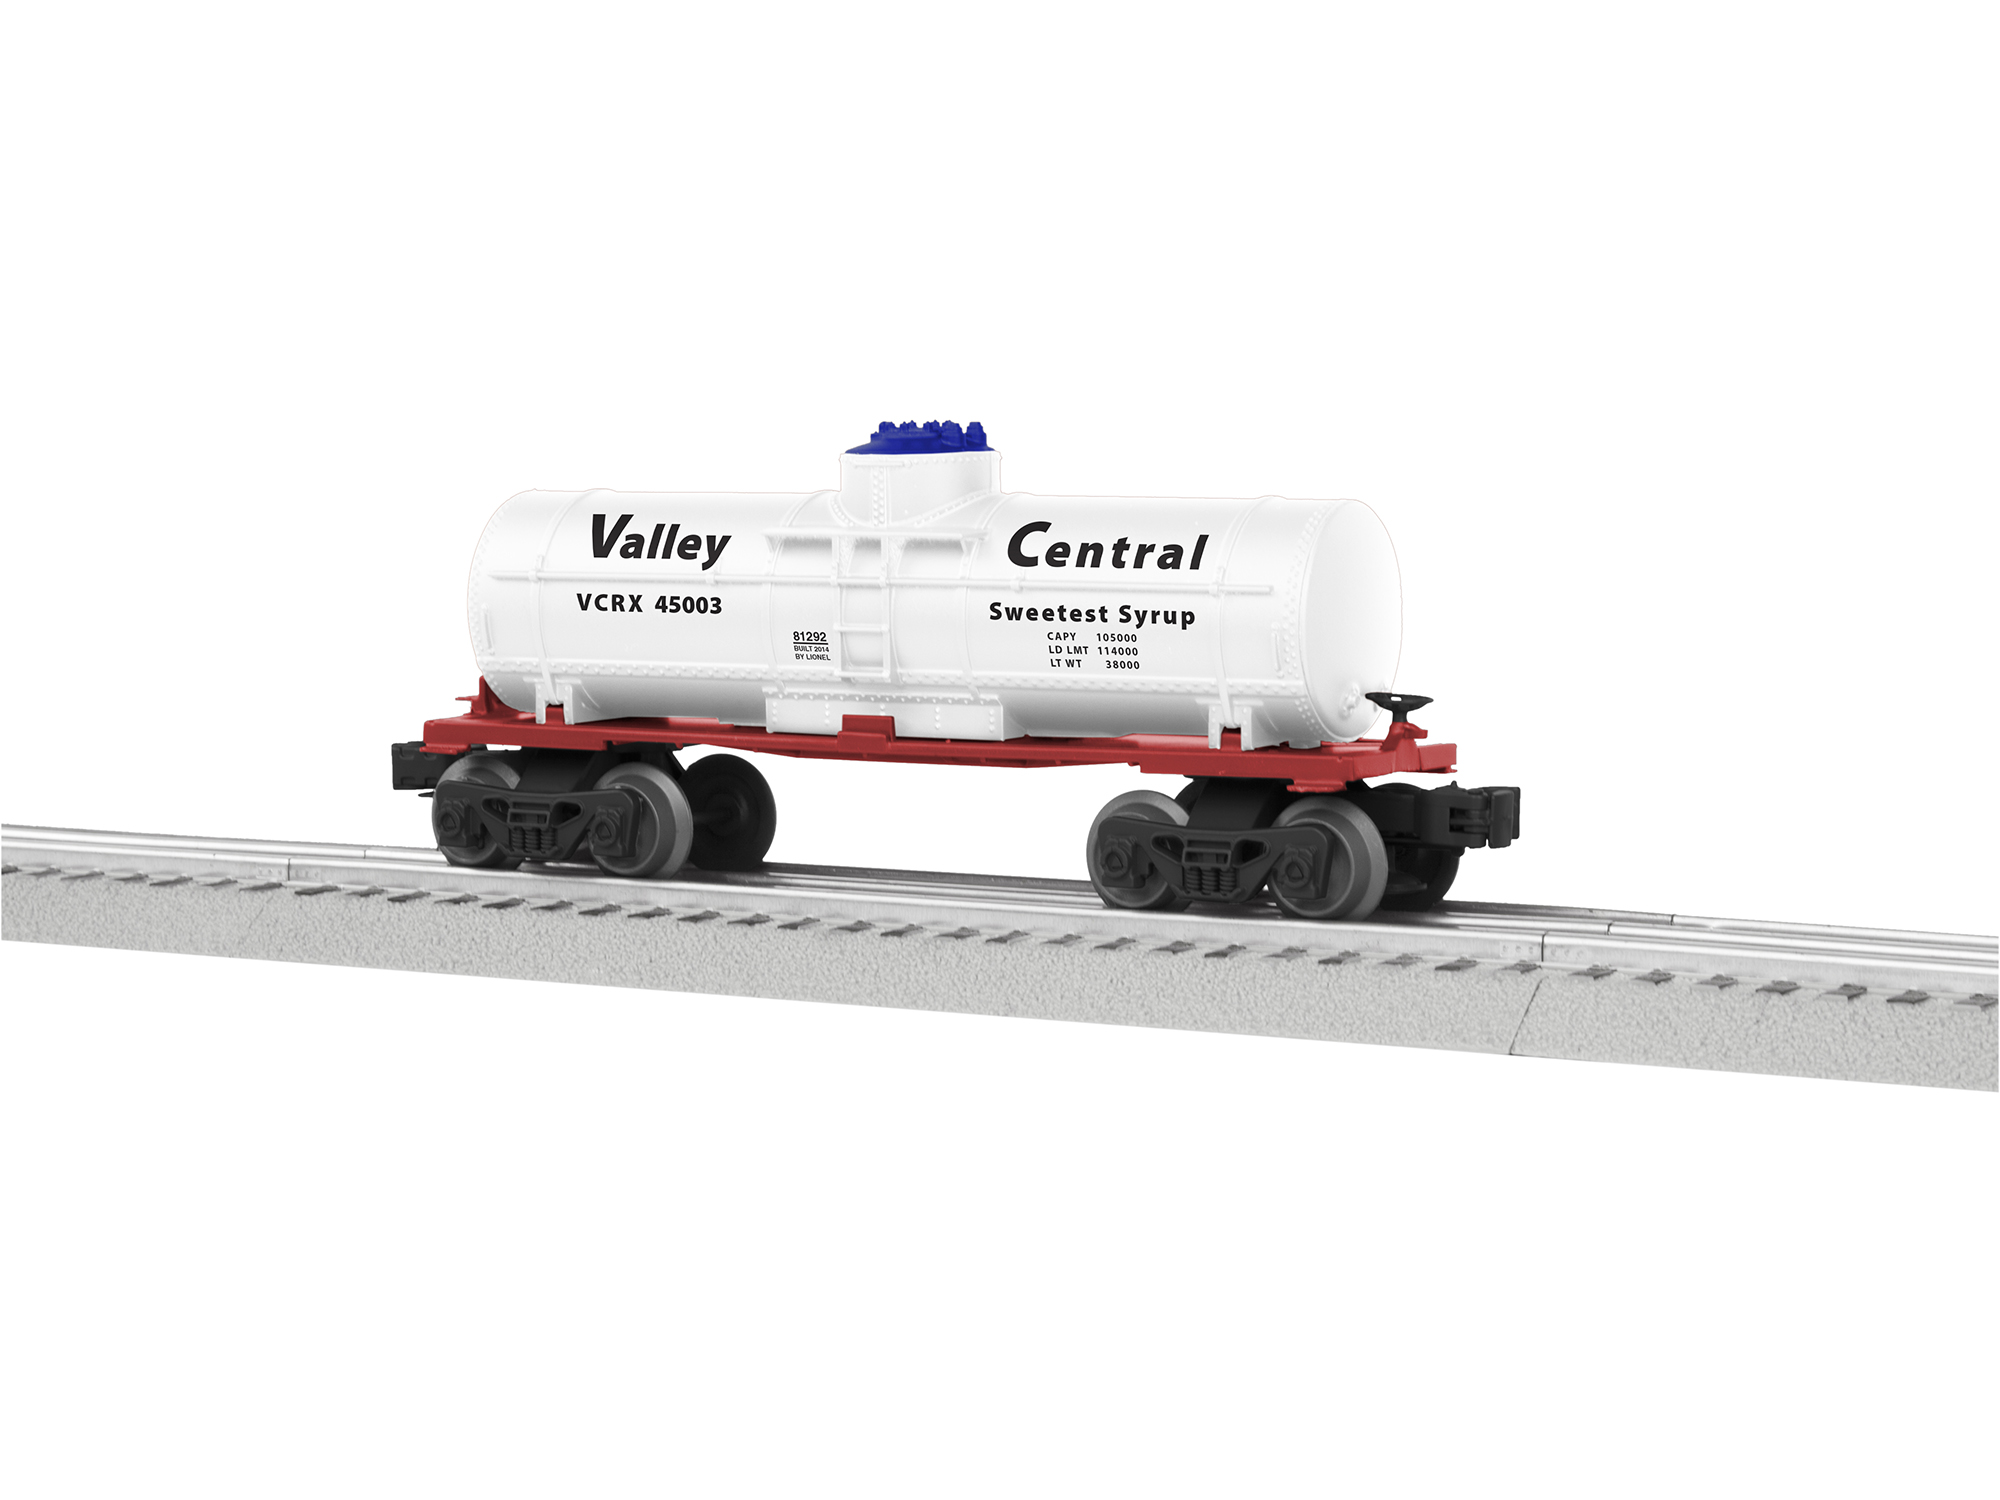 6-81292 VALLEY CENTRAL SINGLE-DOME TANK CAR